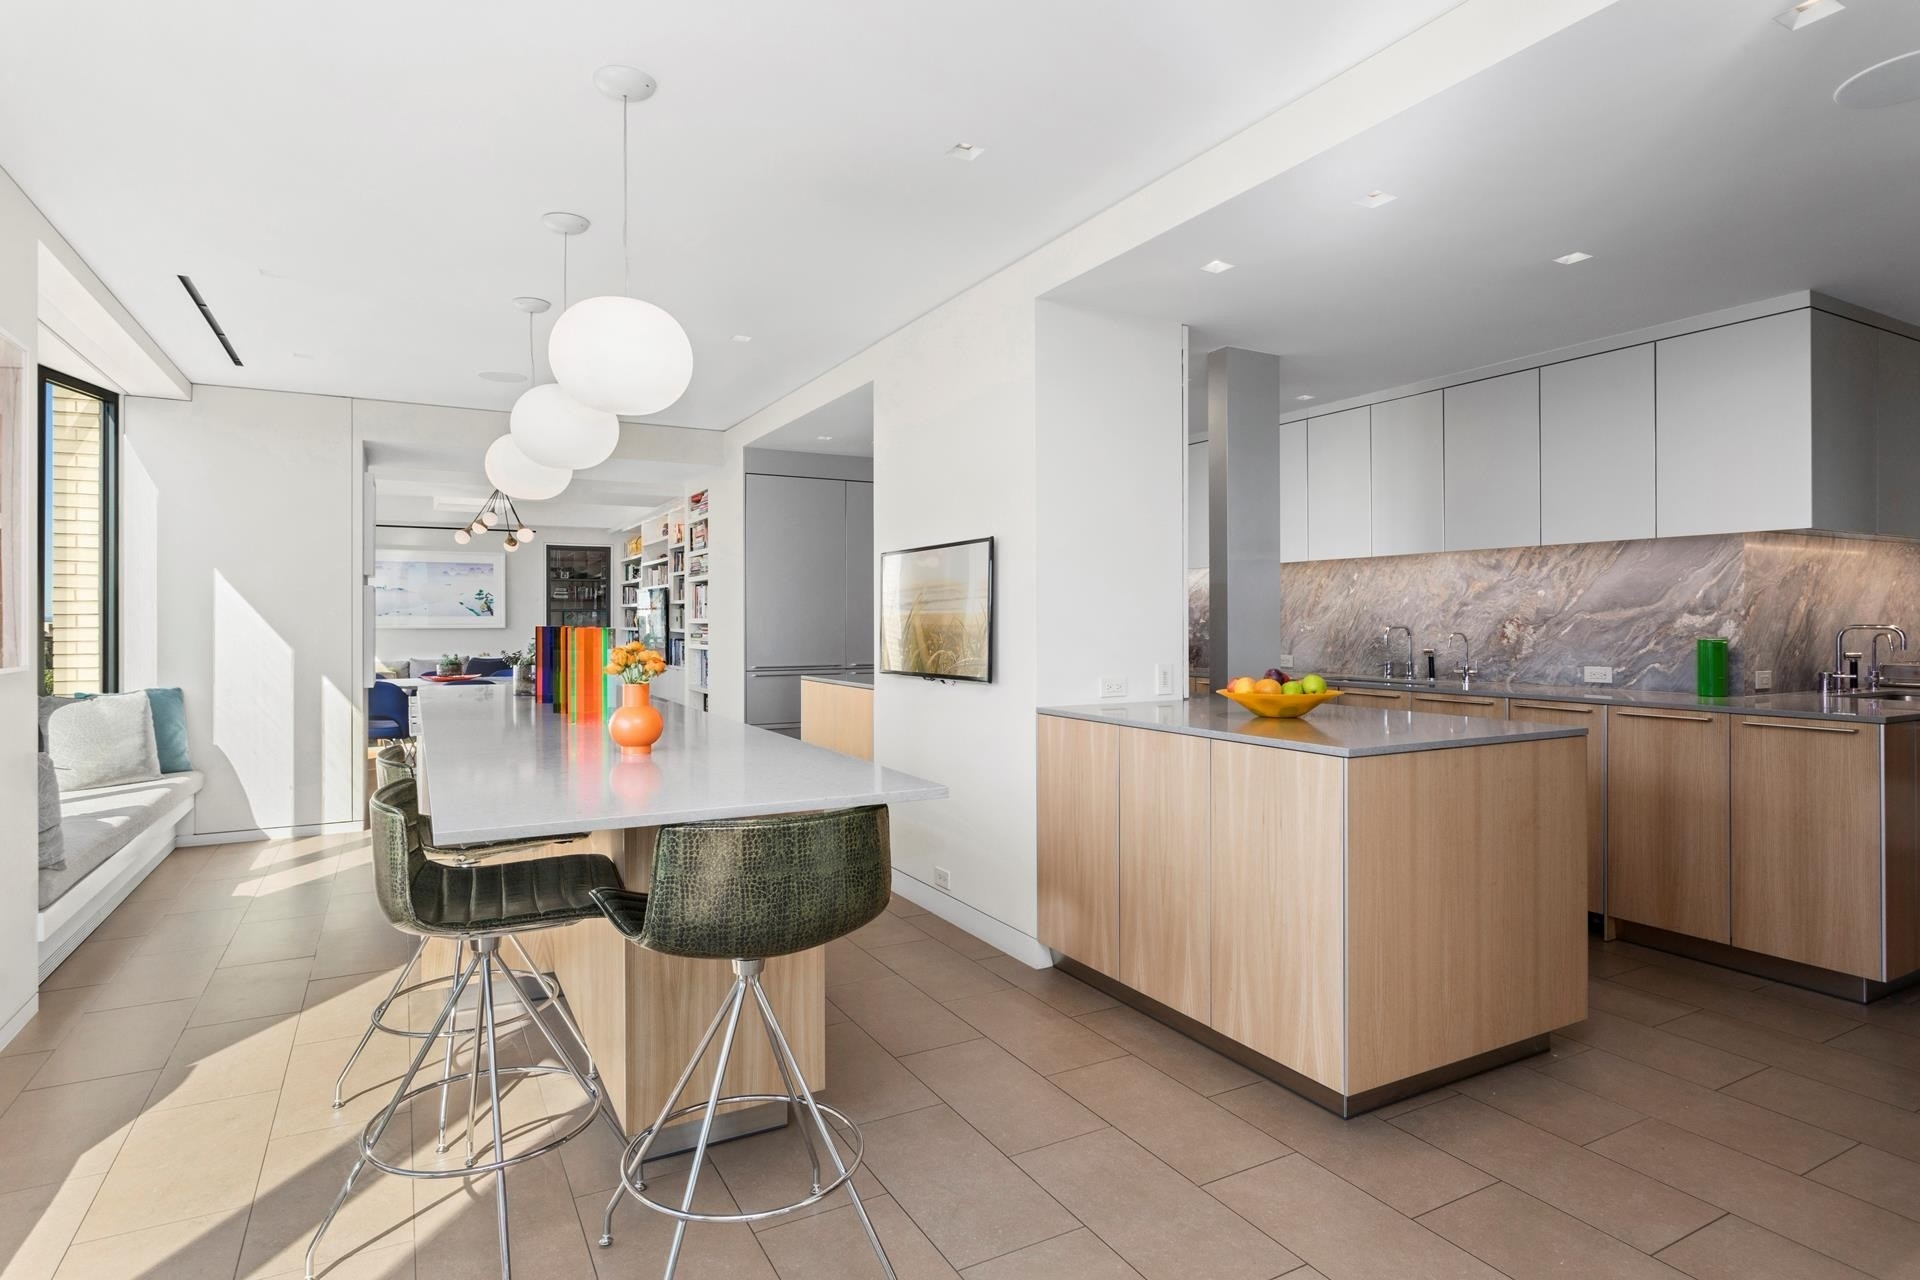 8. Condominiums for Sale at 279 CPW, 279 Central Park West, PHBA Upper West Side, New York, NY 10024